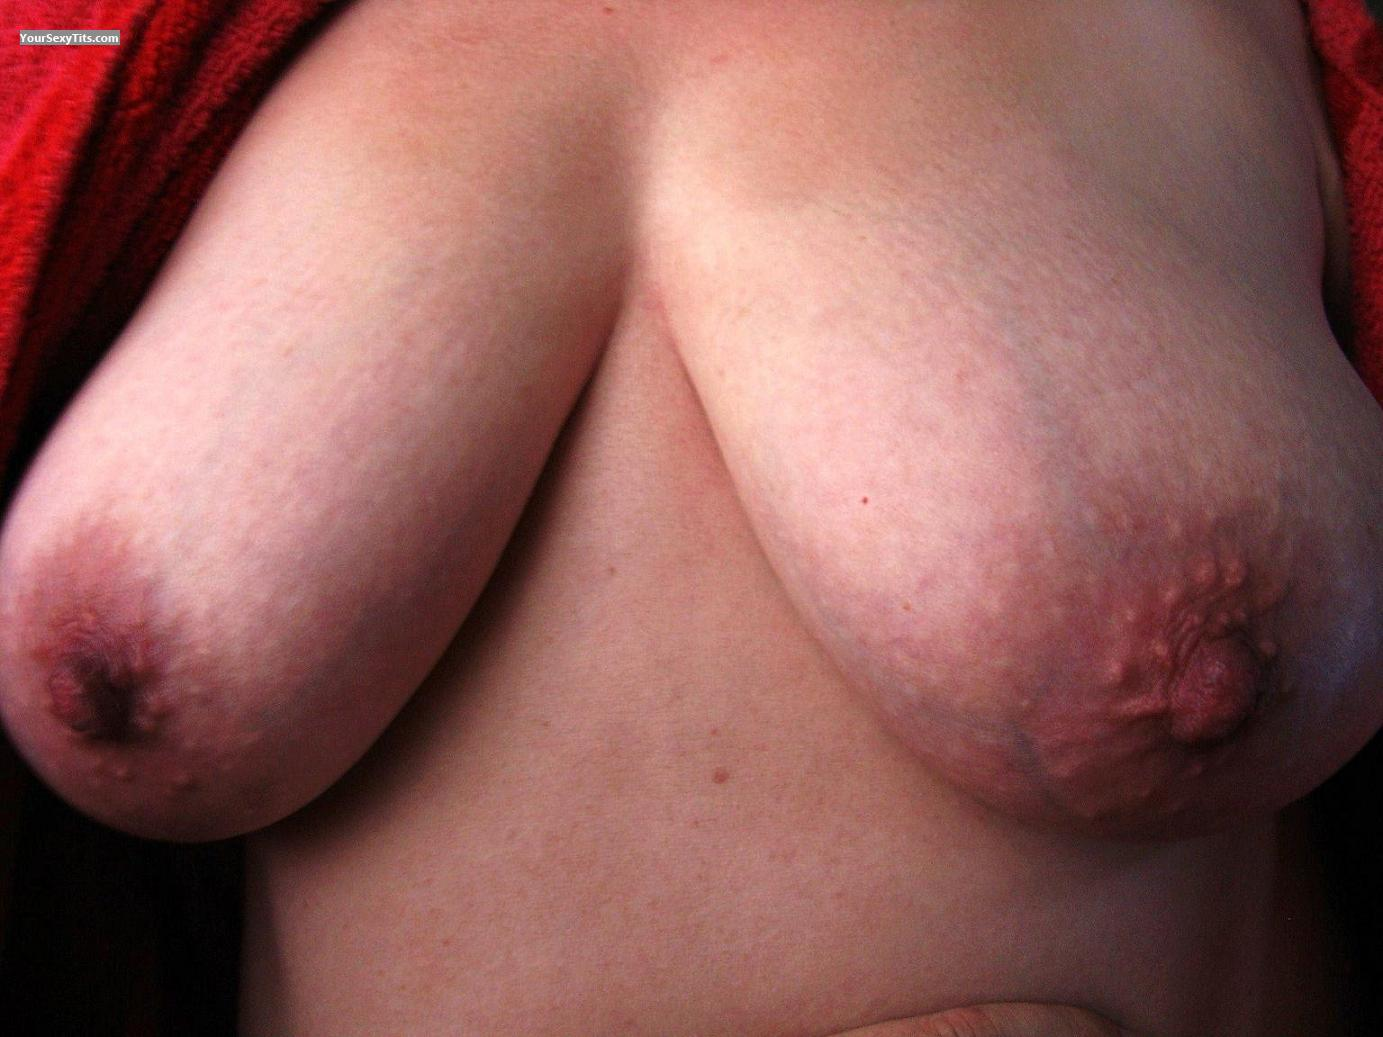 Tit Flash: Big Tits - Jaspis from Finland